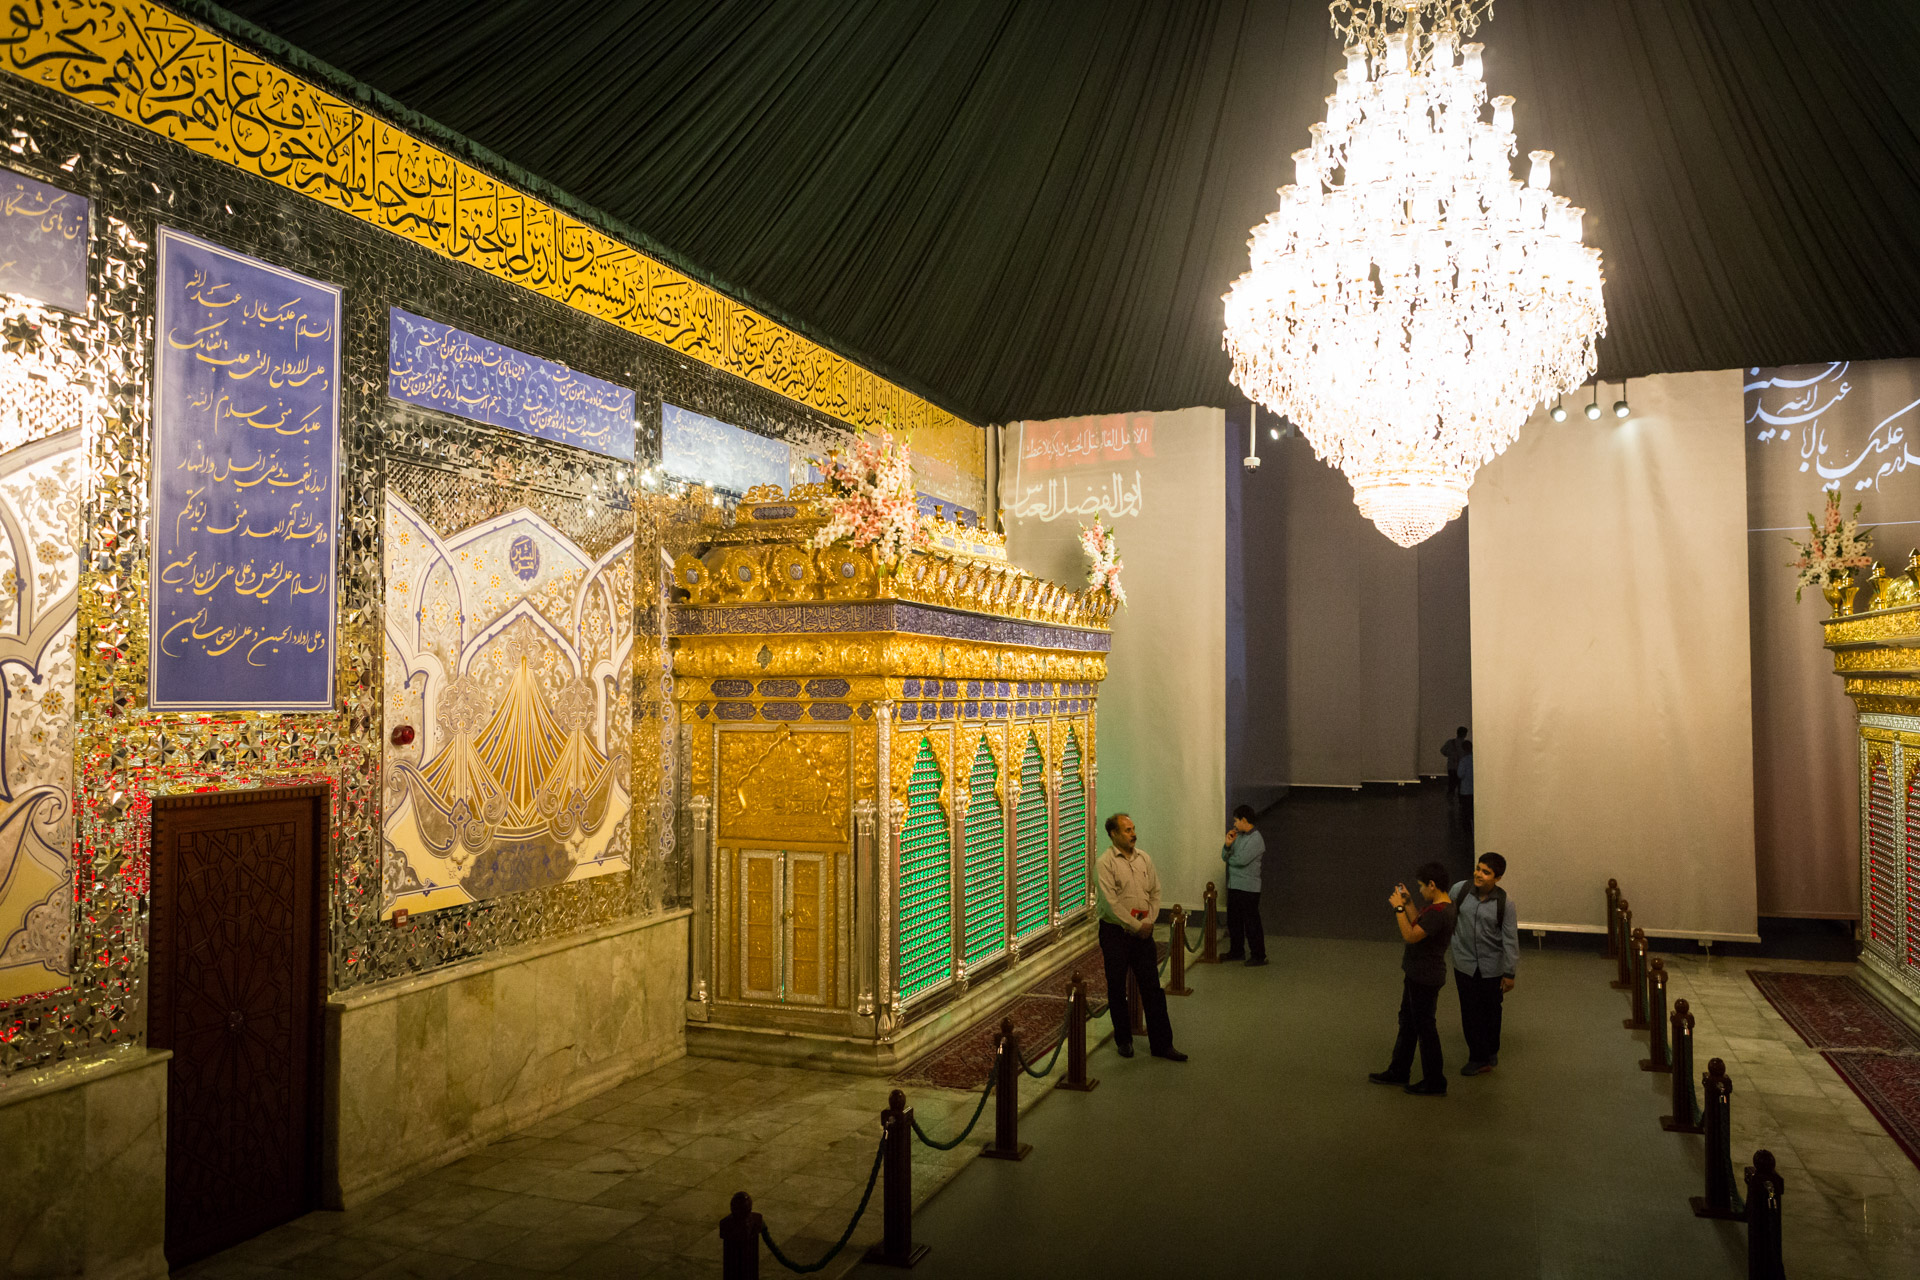 At the end of the bridge leading into the hall of martyrdom, a room representing paradise features two shrines, awaiting selfie-eager visitors.